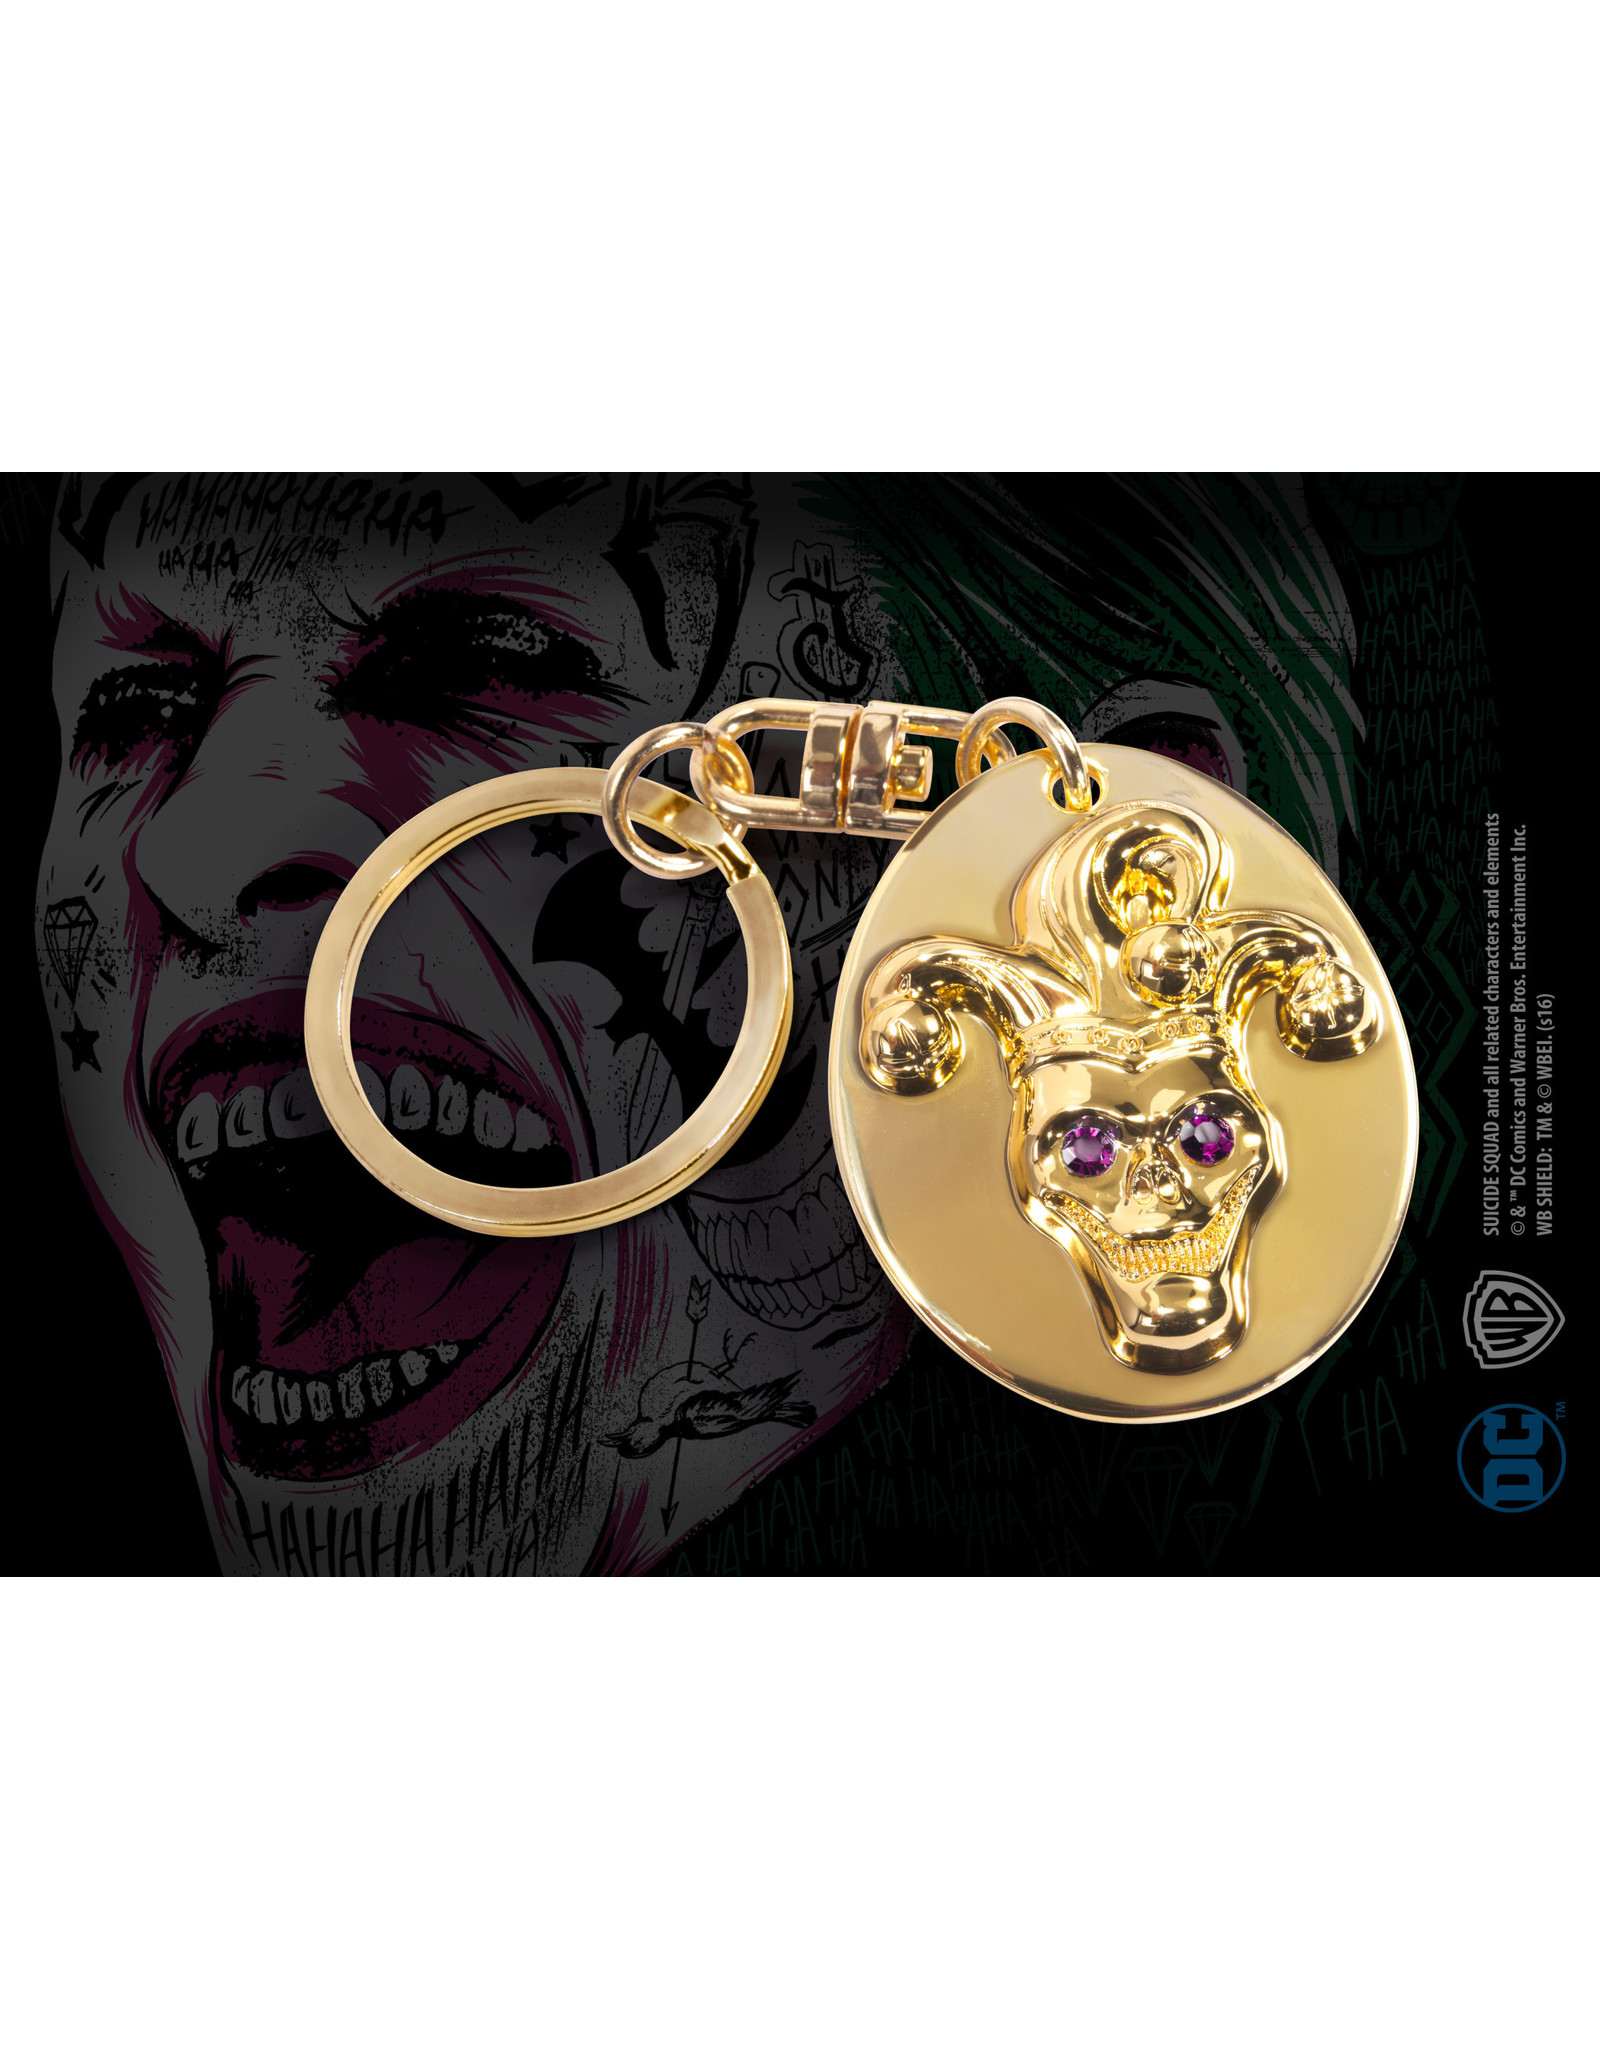 Noble Collection JOKER - Metal Keychain - Suicide Squad Replica